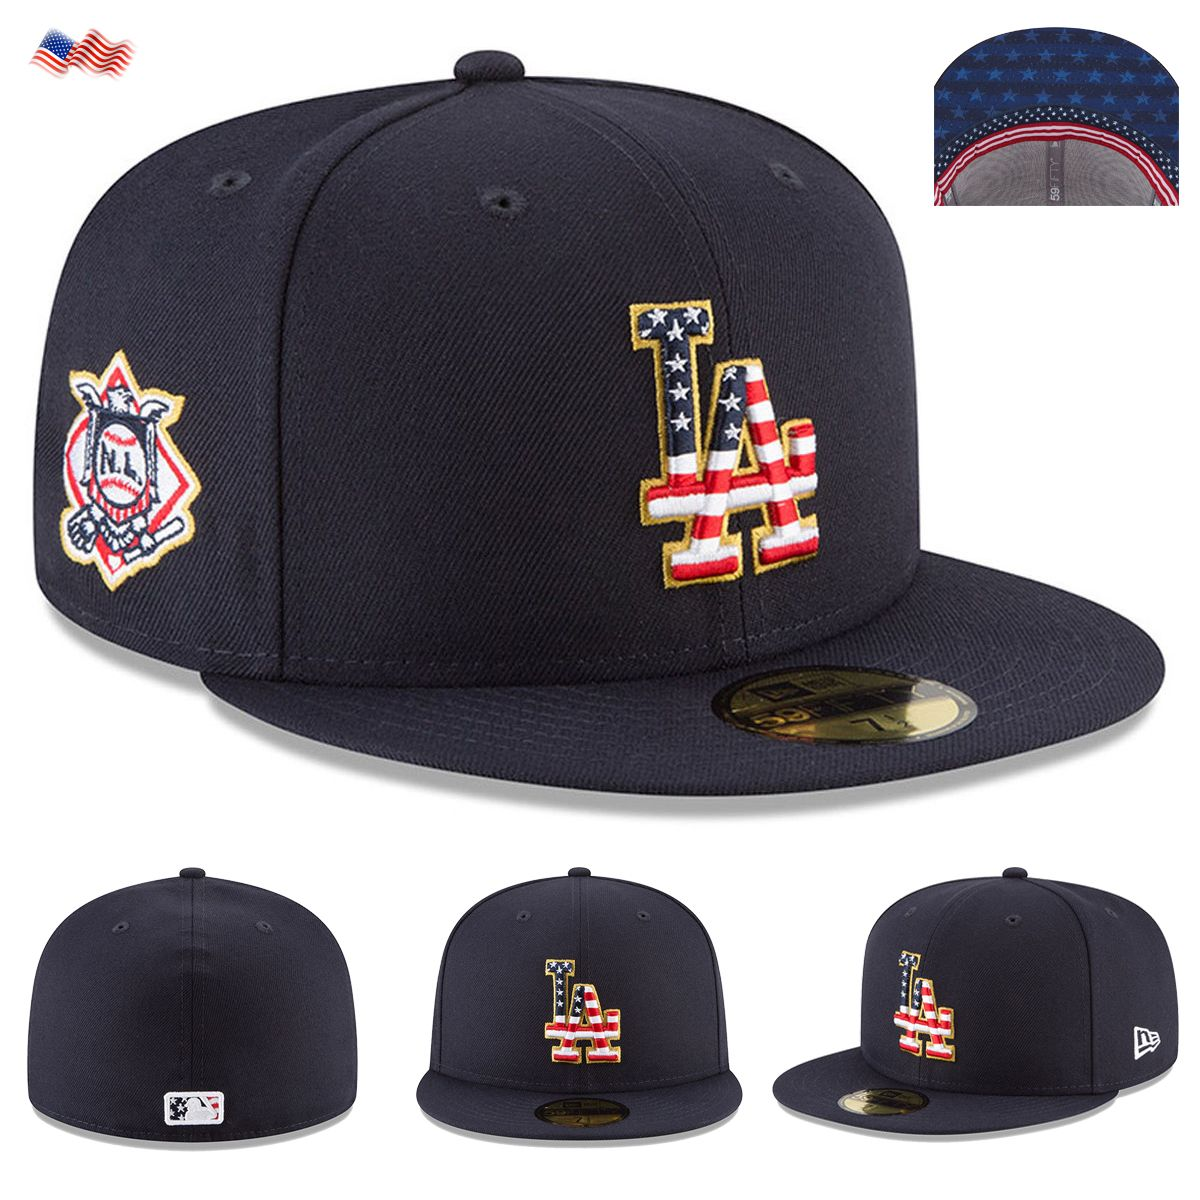 4e6b6727 Details about New Era Cap 59FIFTY Los Angeles Dodgers 4th Of July ...